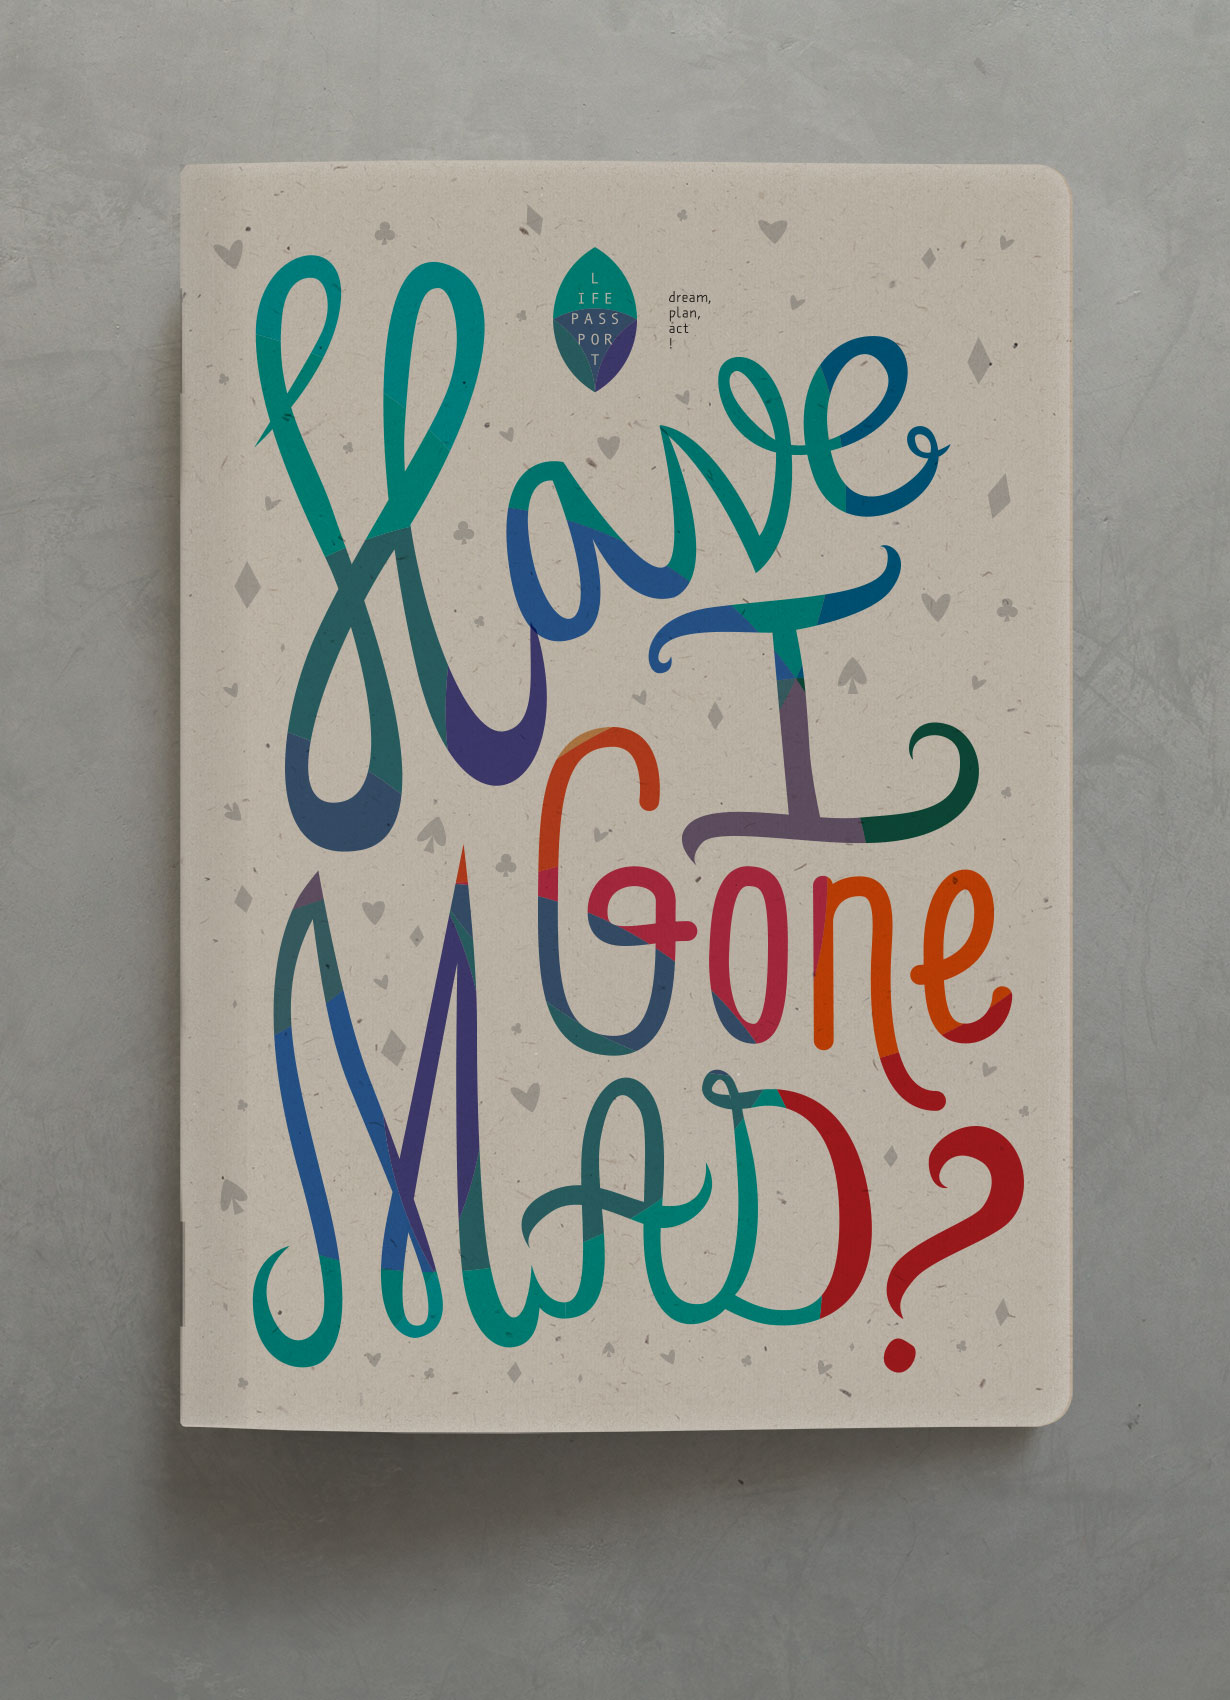 Have I gone mad? Notebook | zazdesign graphic lab